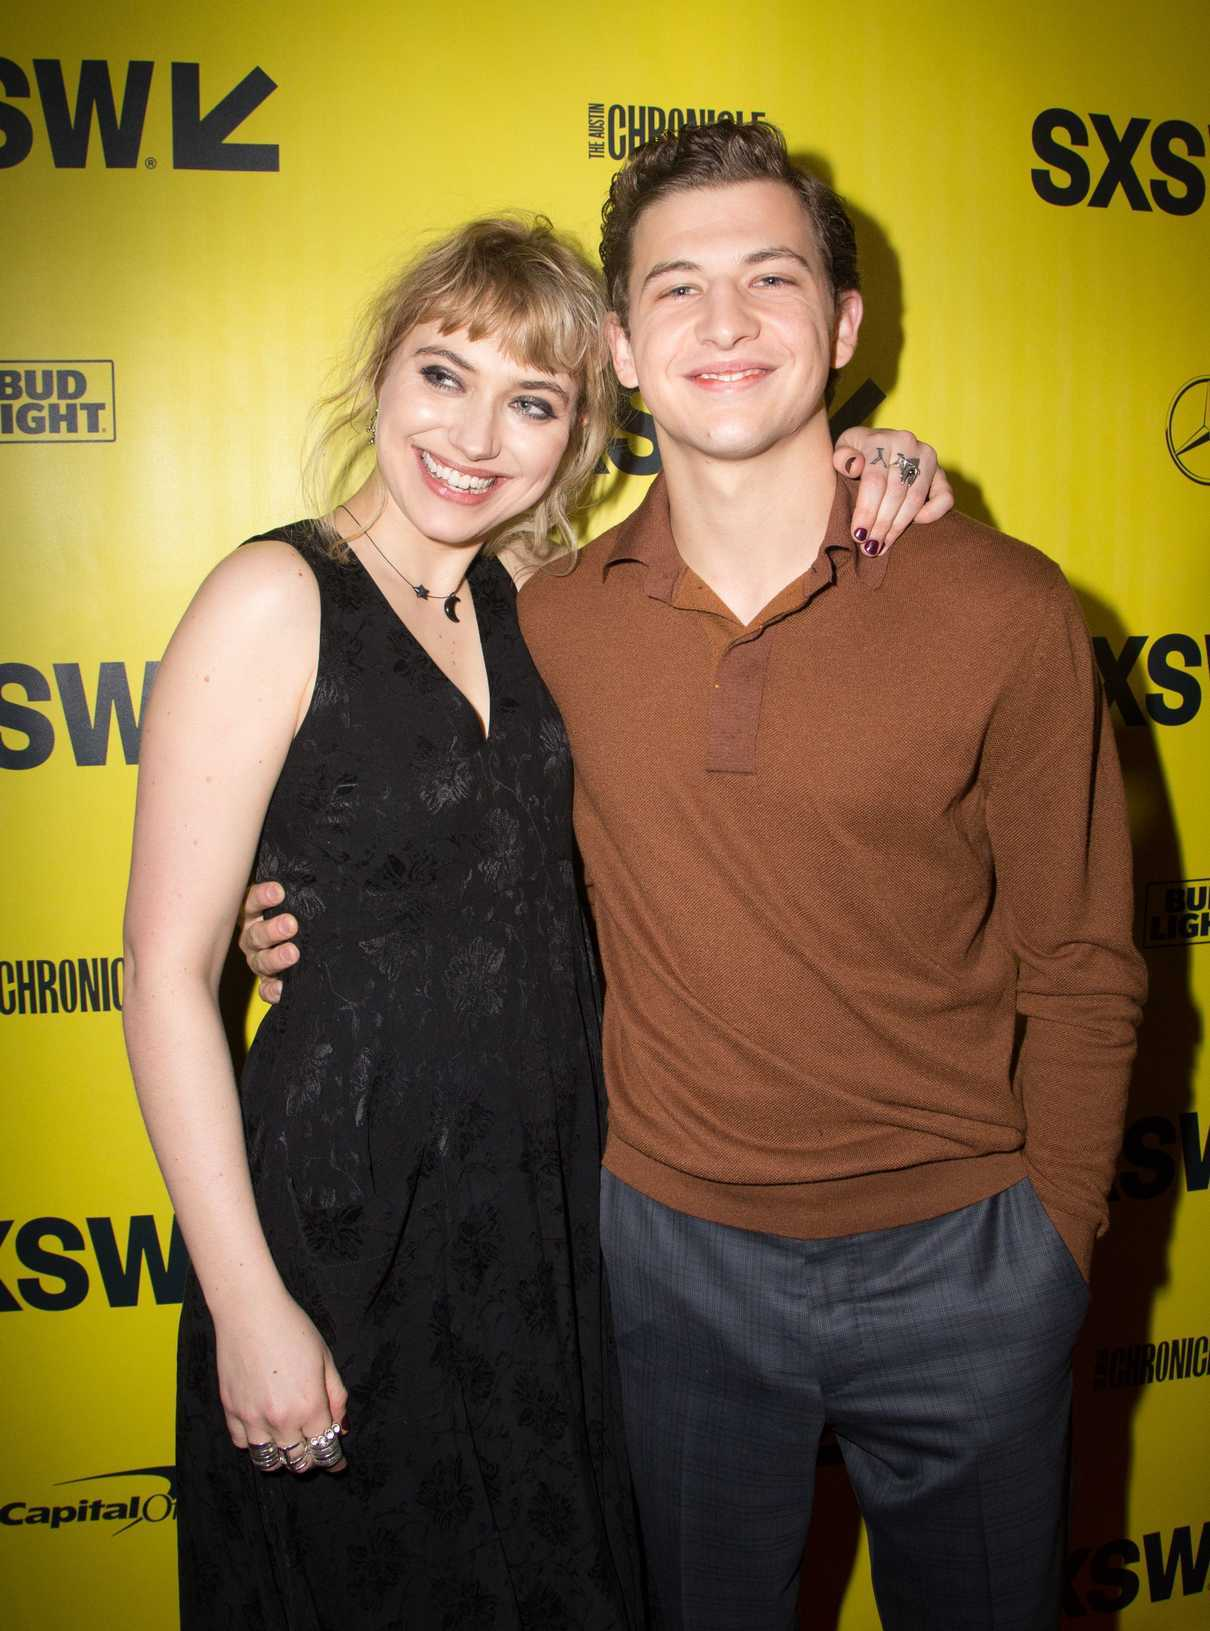 Imogen Poots at the Friday's Child Premiere During 2018 SXSW Festival in Austin 03/11/2018-5